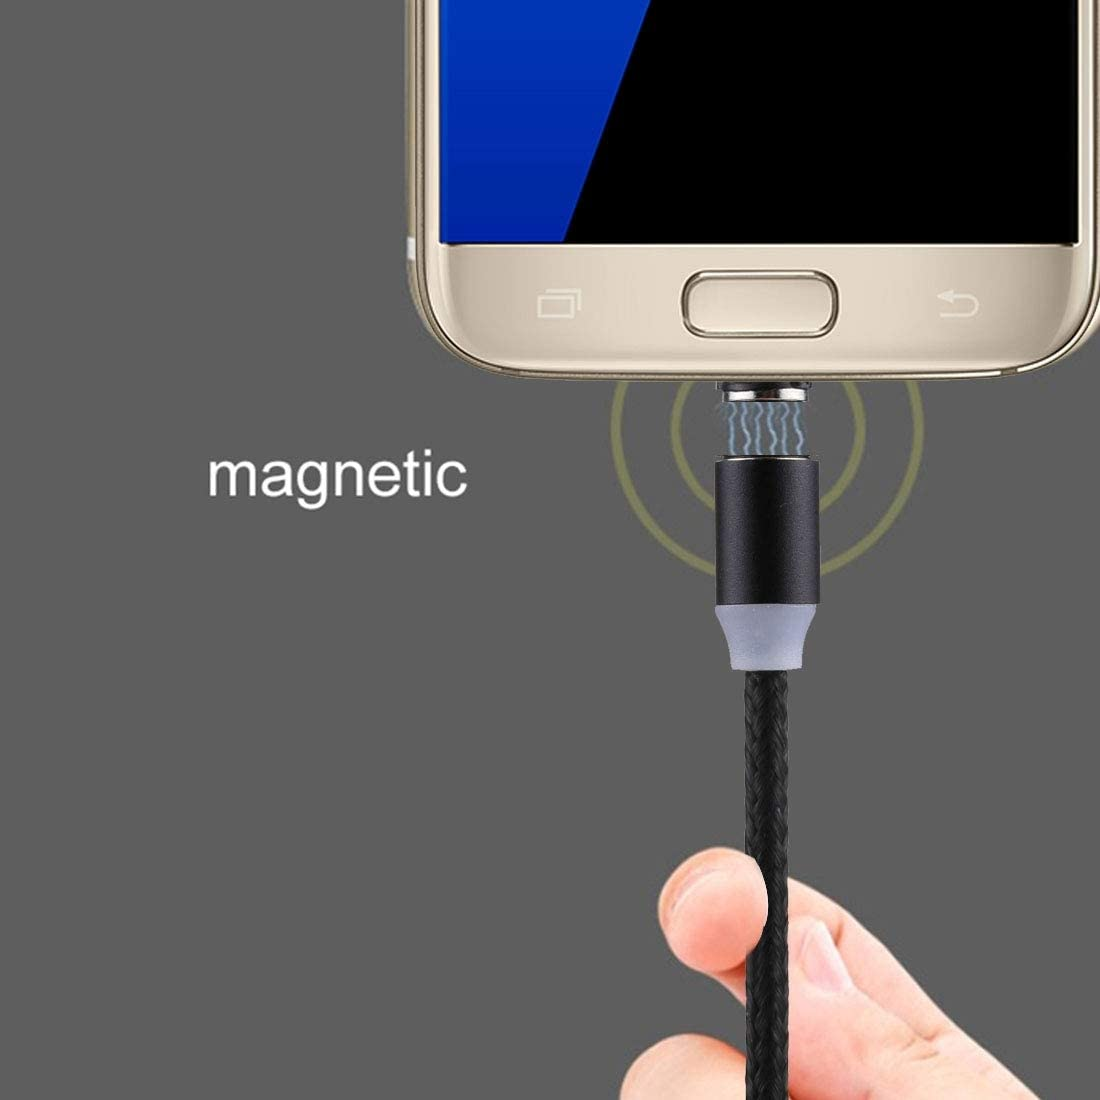 LG//HTC and Other Smartphones Xiaomi//Meizu For Samsung//Huawei Data Cables 1m Weave Line USB to Micro USB Magnetic Charging Cable